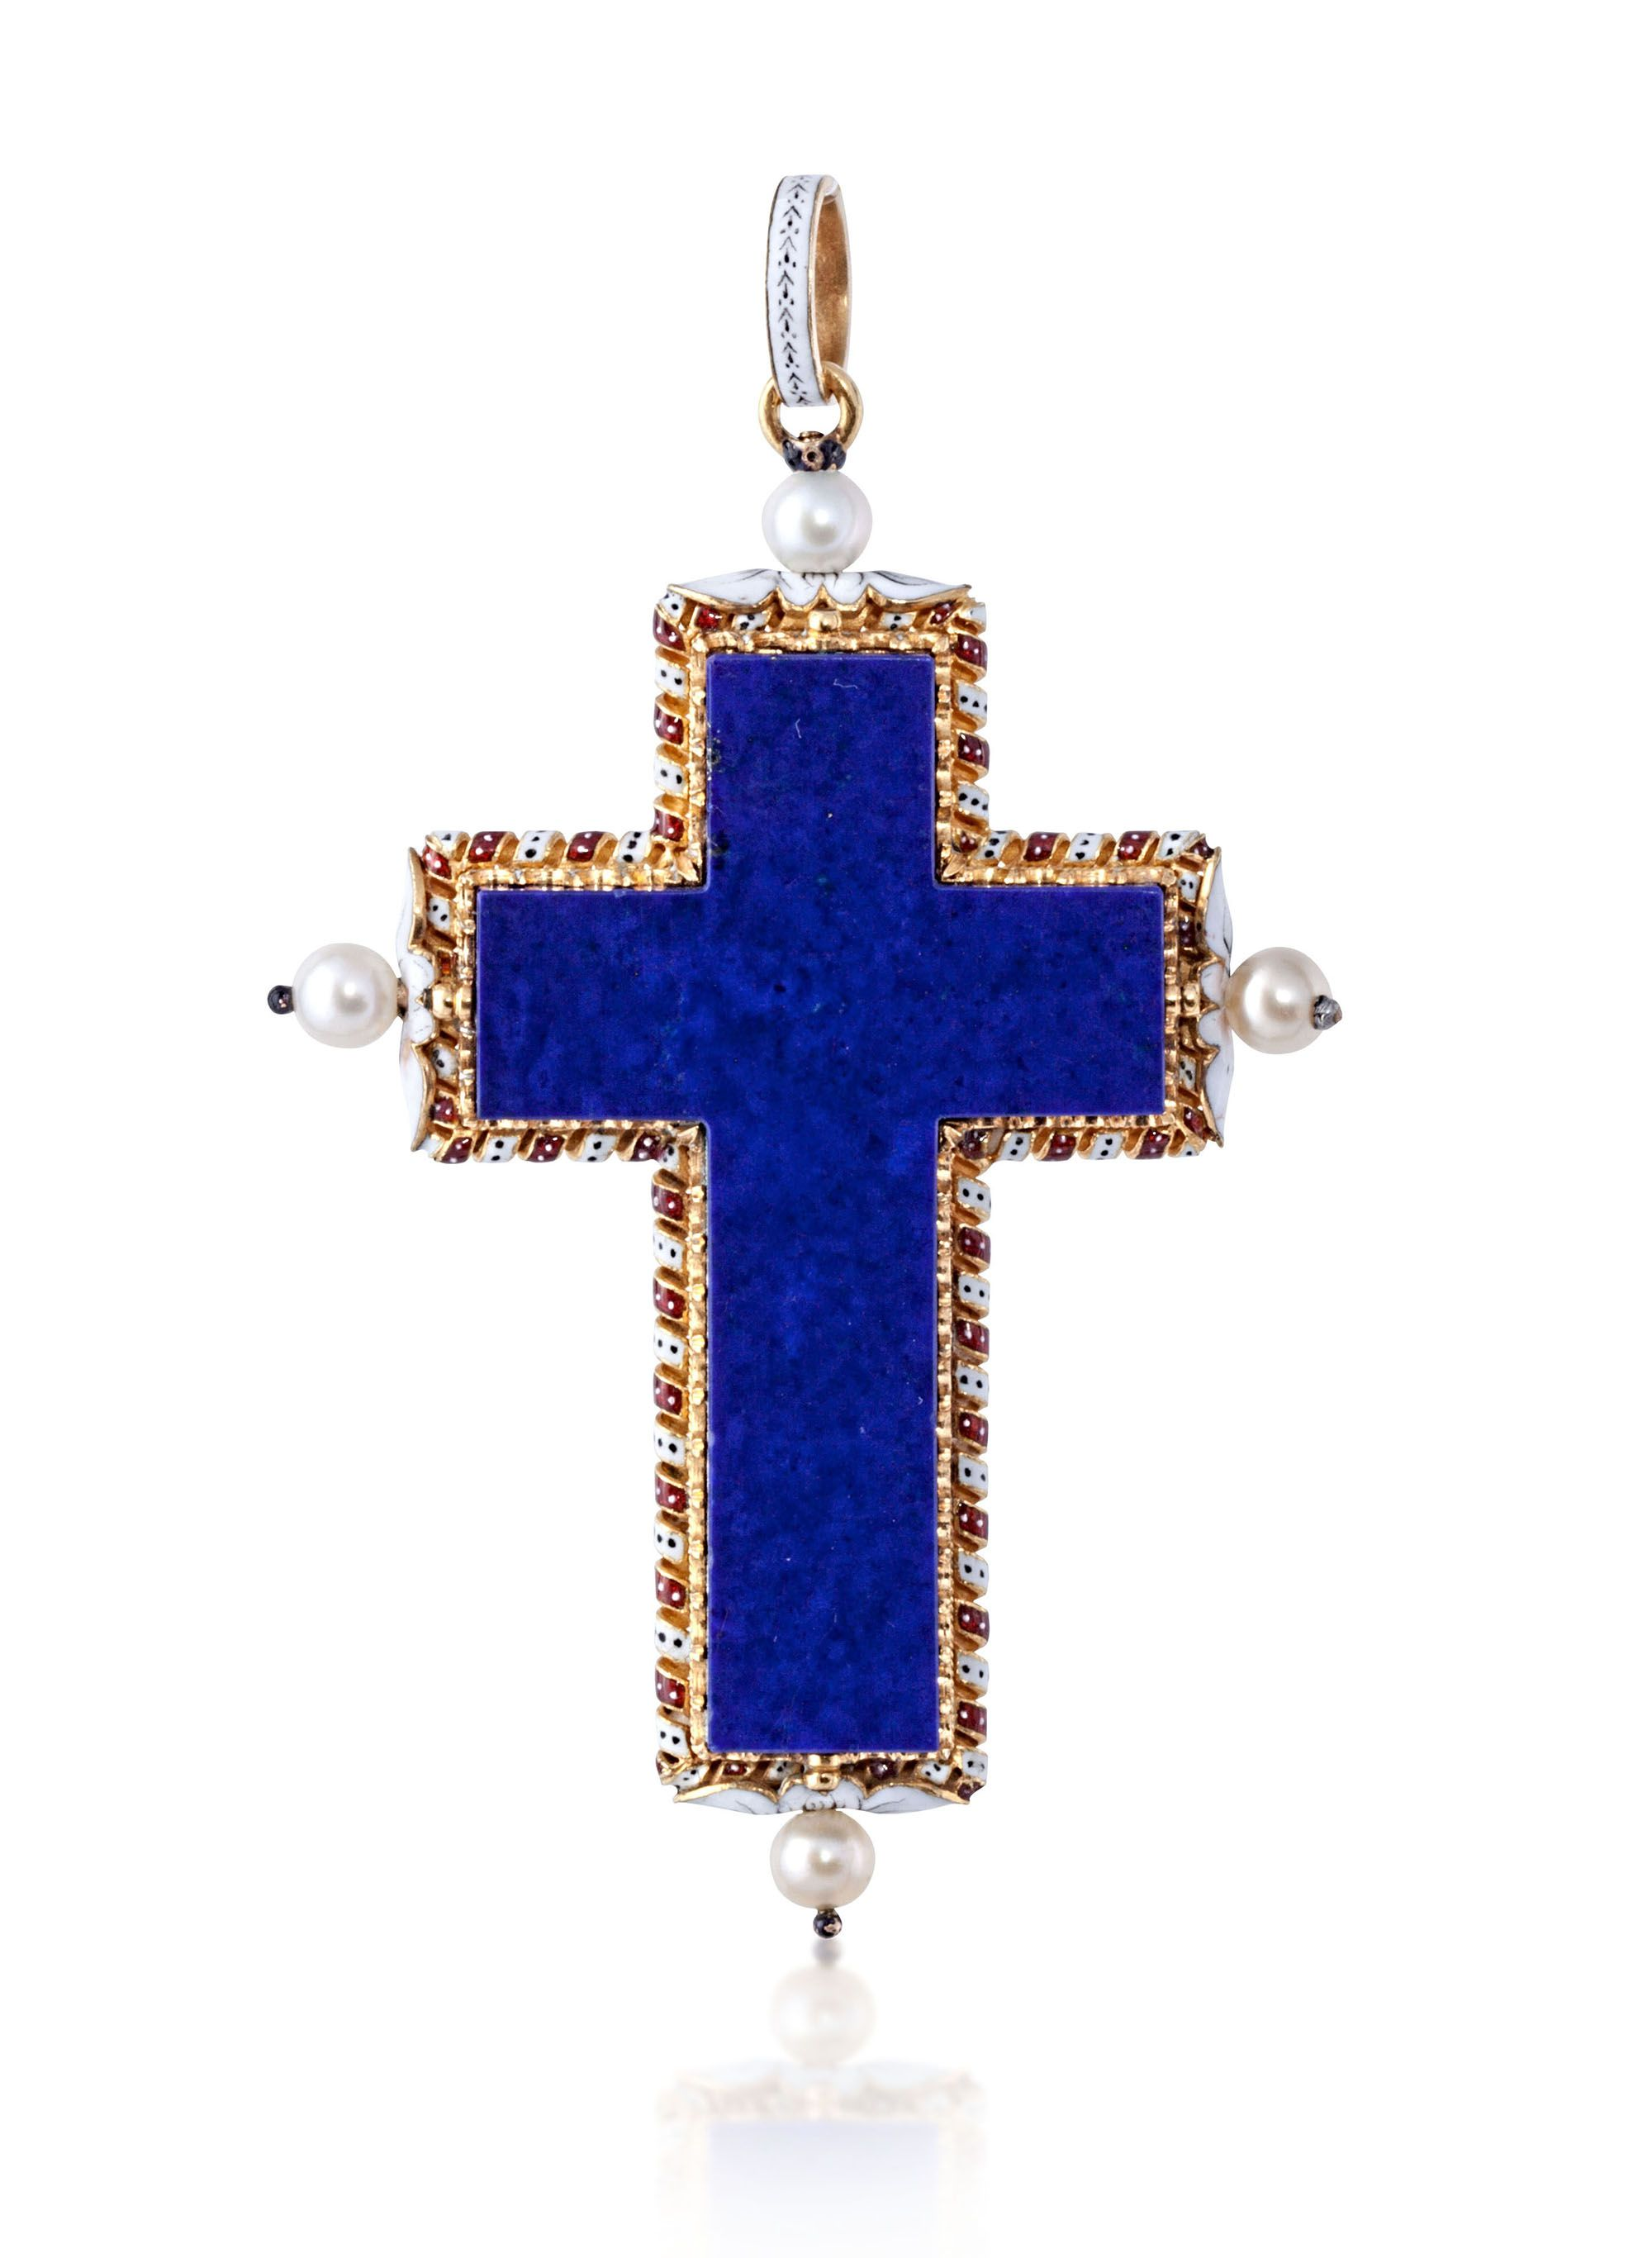 LAPIS AND ENAMEL CROSS SET IN YELLOW GOLD I William Noble | Estate Jewelry